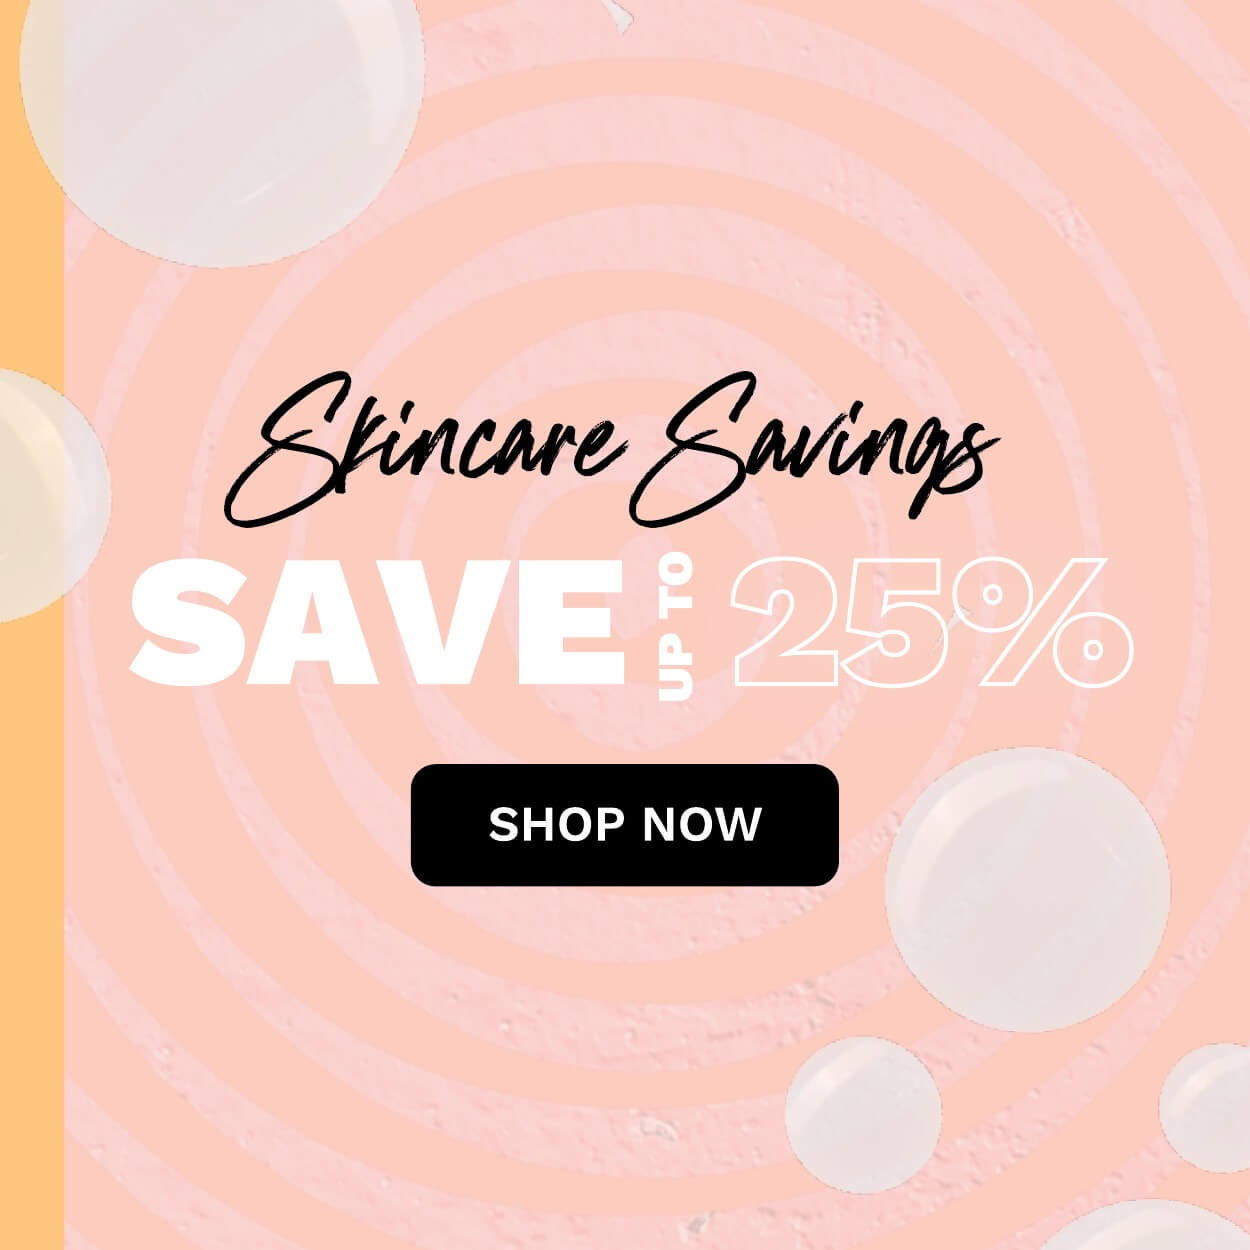 Up to 25% off skincare